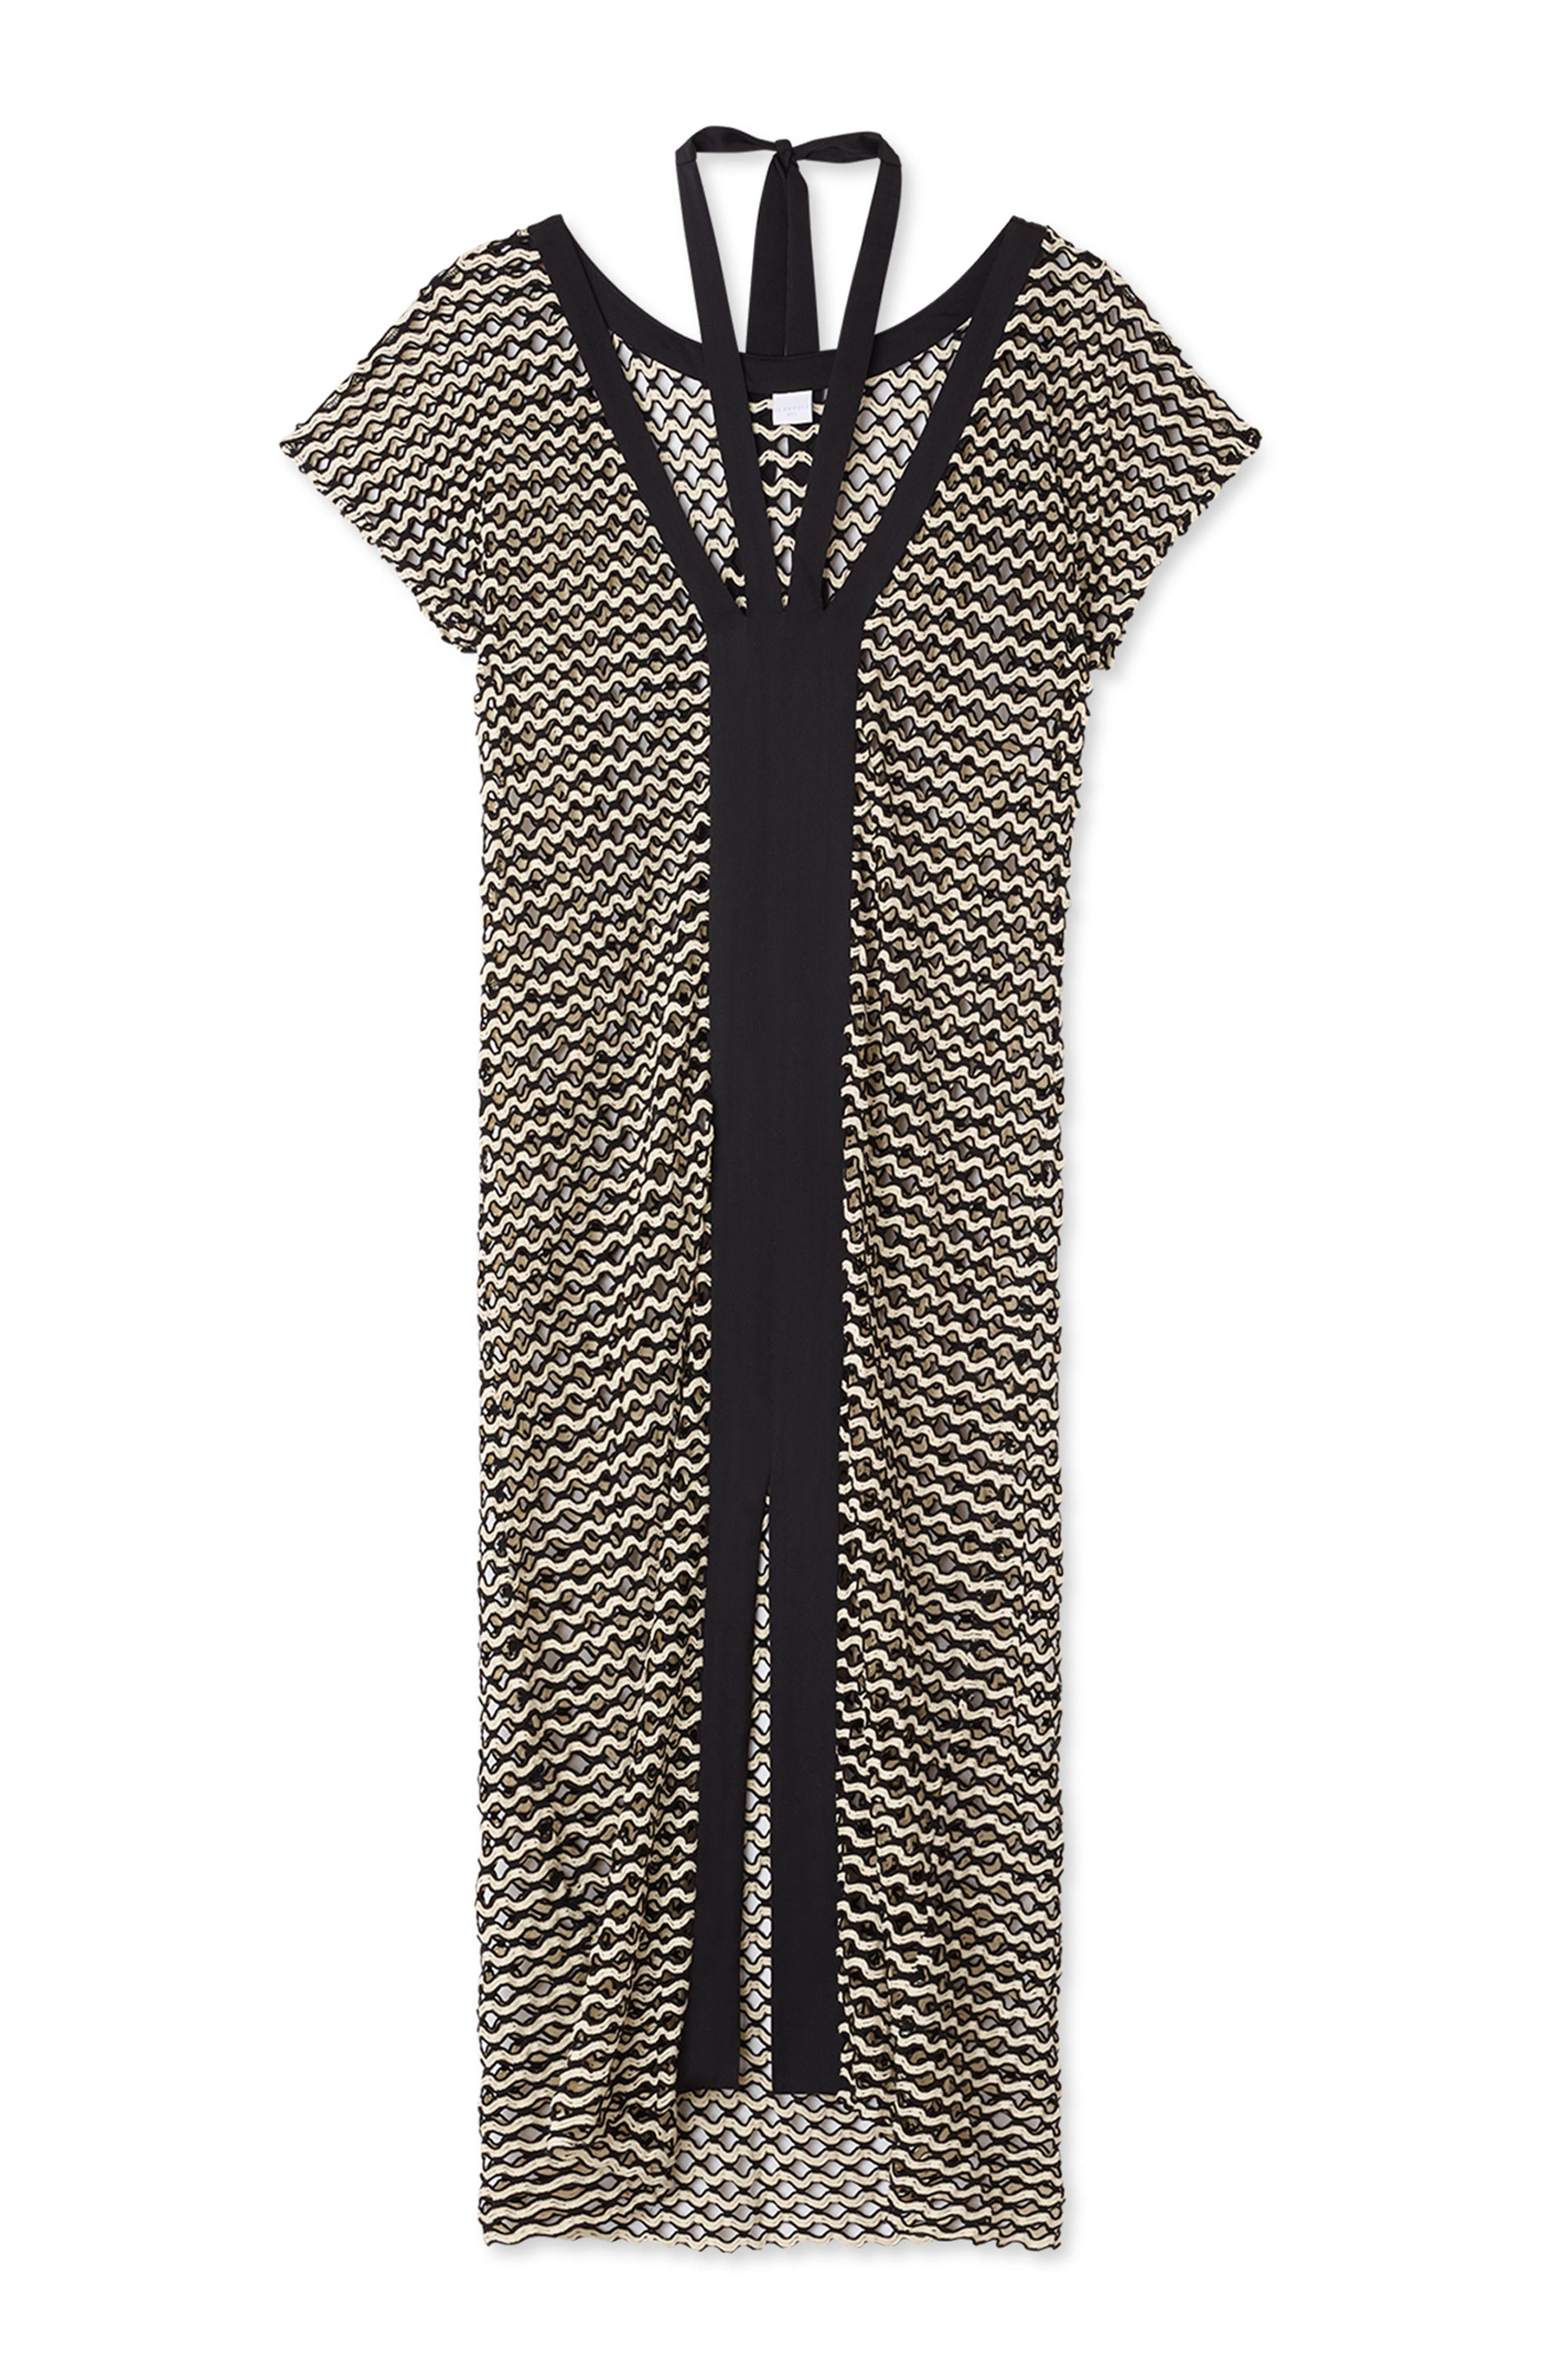 FLAGPOLE Opal Caftan Cover-Up in Ivory/ Black Scallop